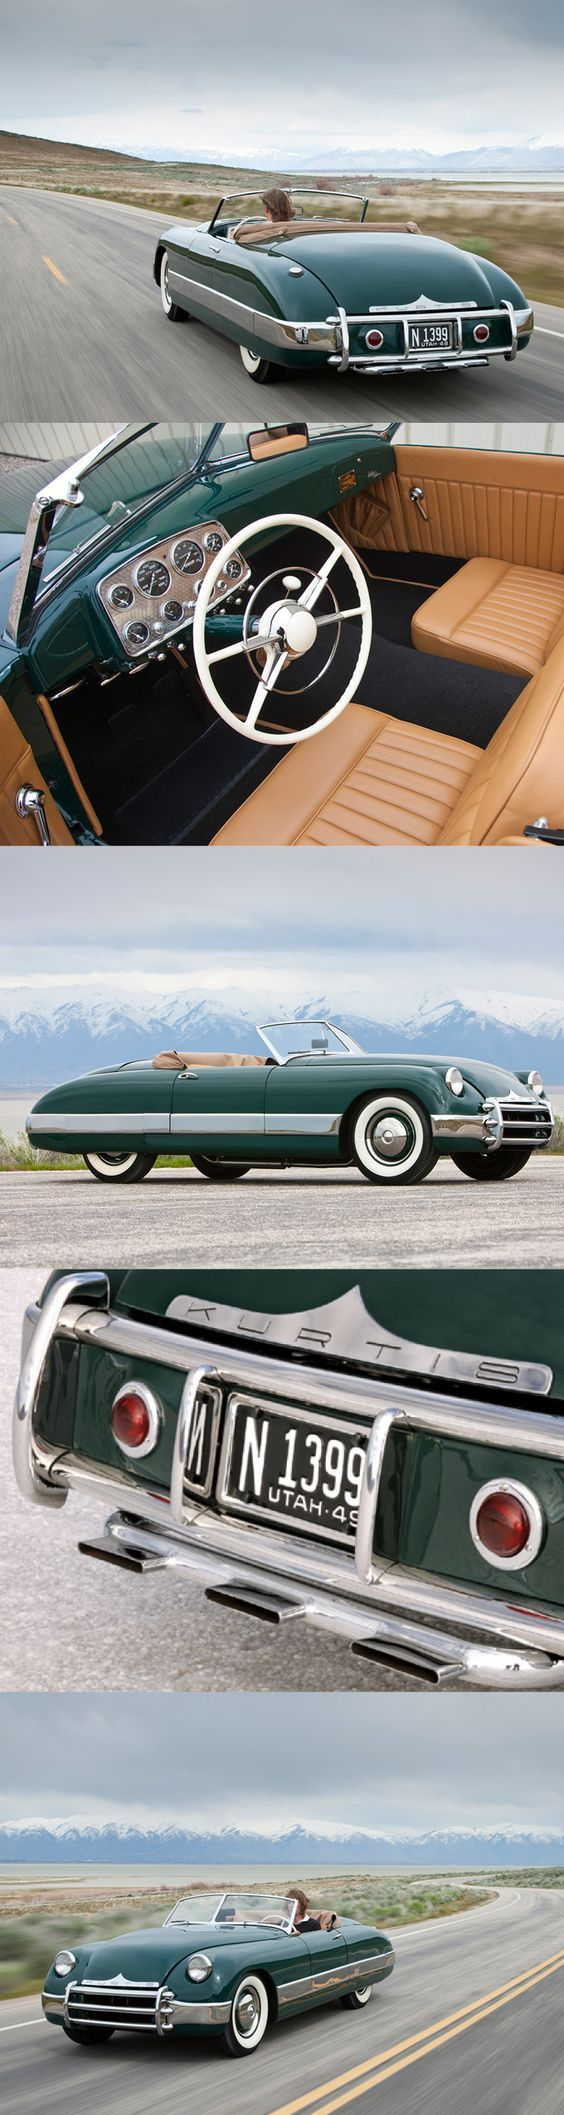 13 Things I Found on the Internet Today (Vol. CCXXXI)The 1949, the Kurtis Sports Car, one of 36 produced